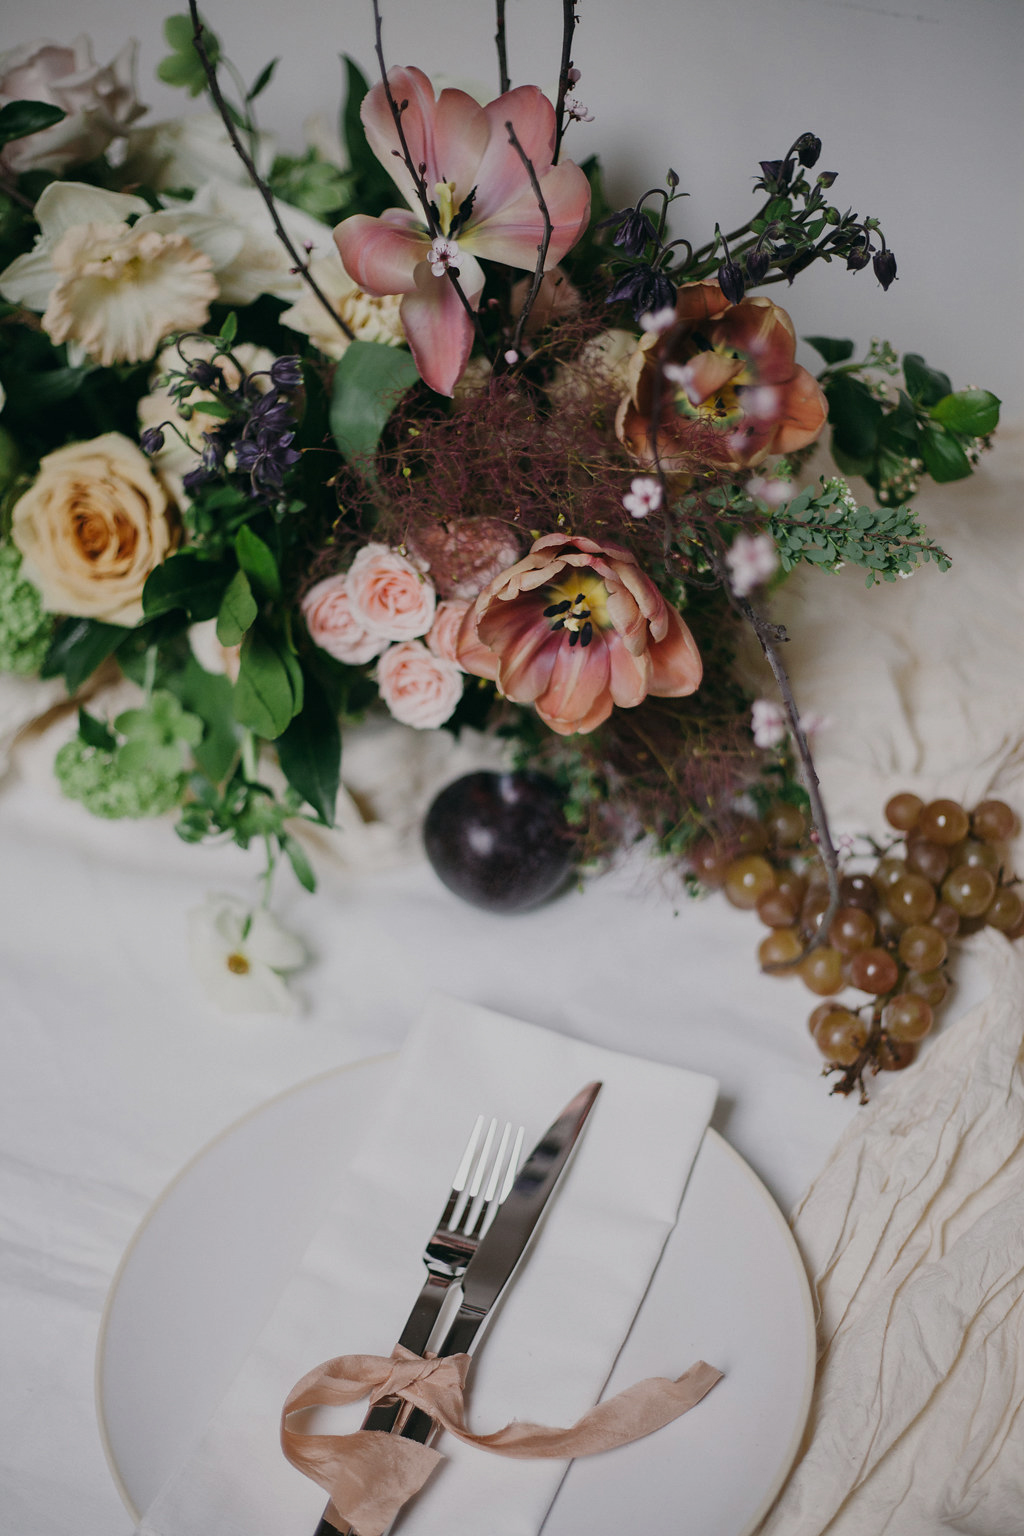 Tabletop & Other Arrangements - see more...